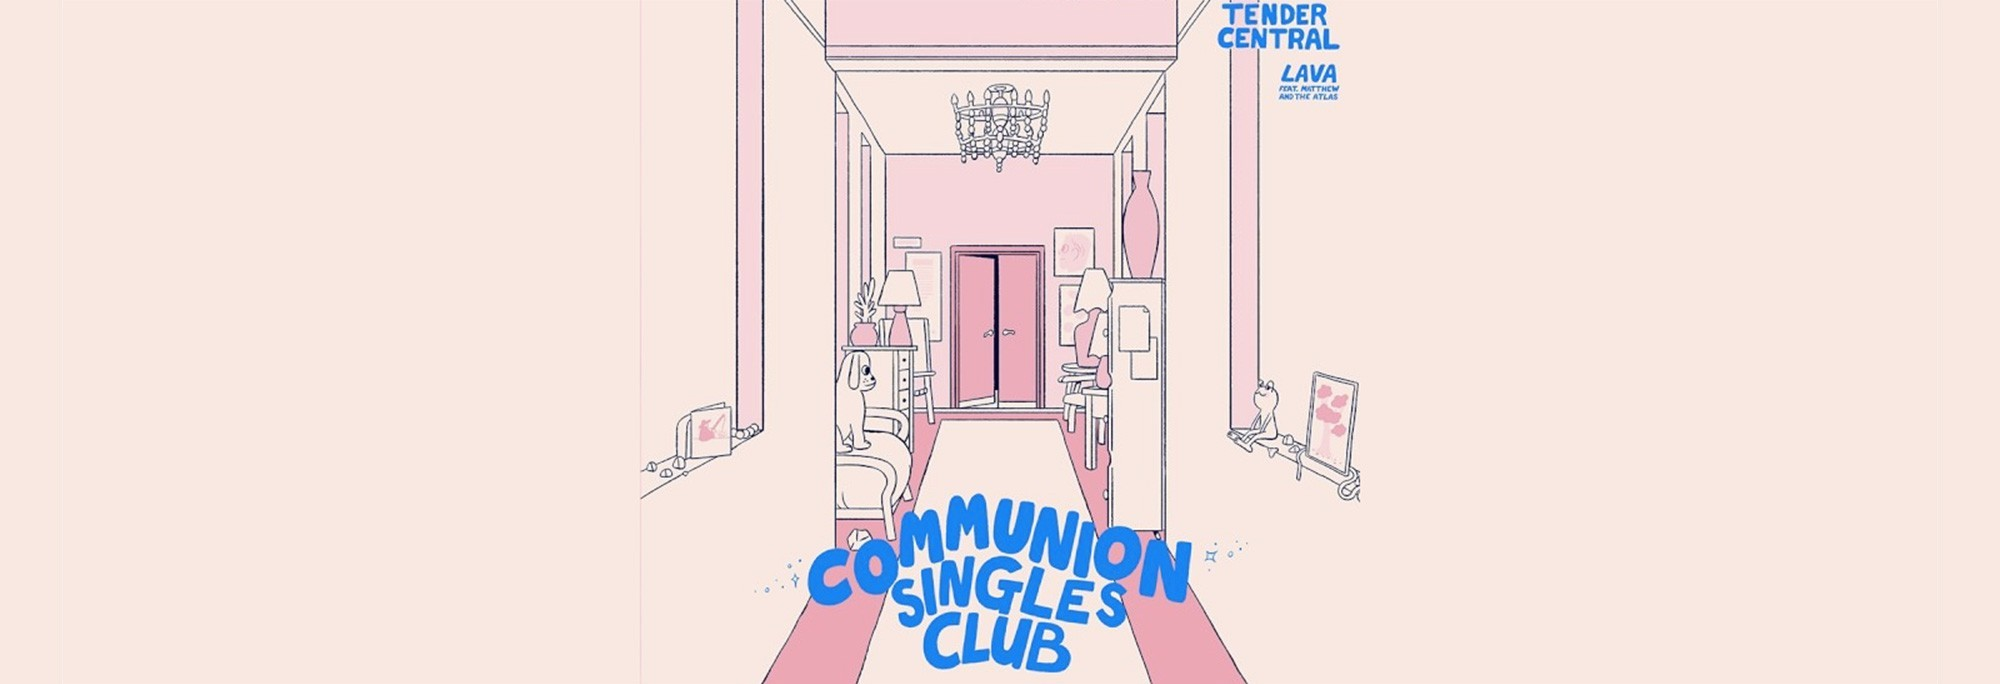 Communion Singles Club - Annual Subscription